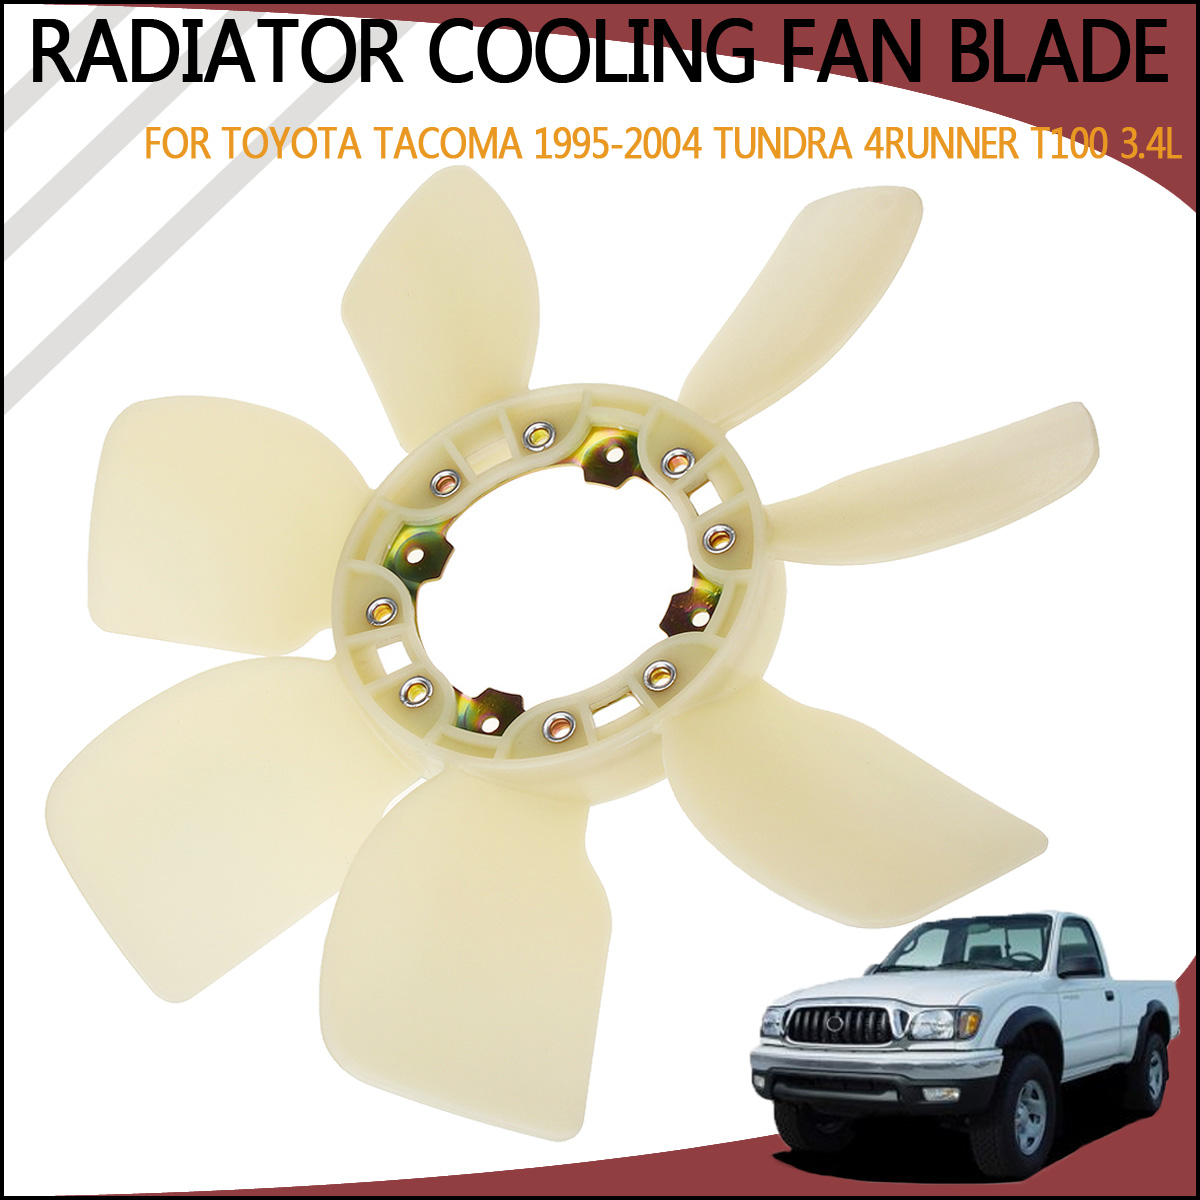 Radiator Cooling Fan Blade For Toyota Tacoma 1995 1996 1997 1998 1999 2000 2001 2002 2004 Tundra 4Runner T100 3.4L 16361 62010